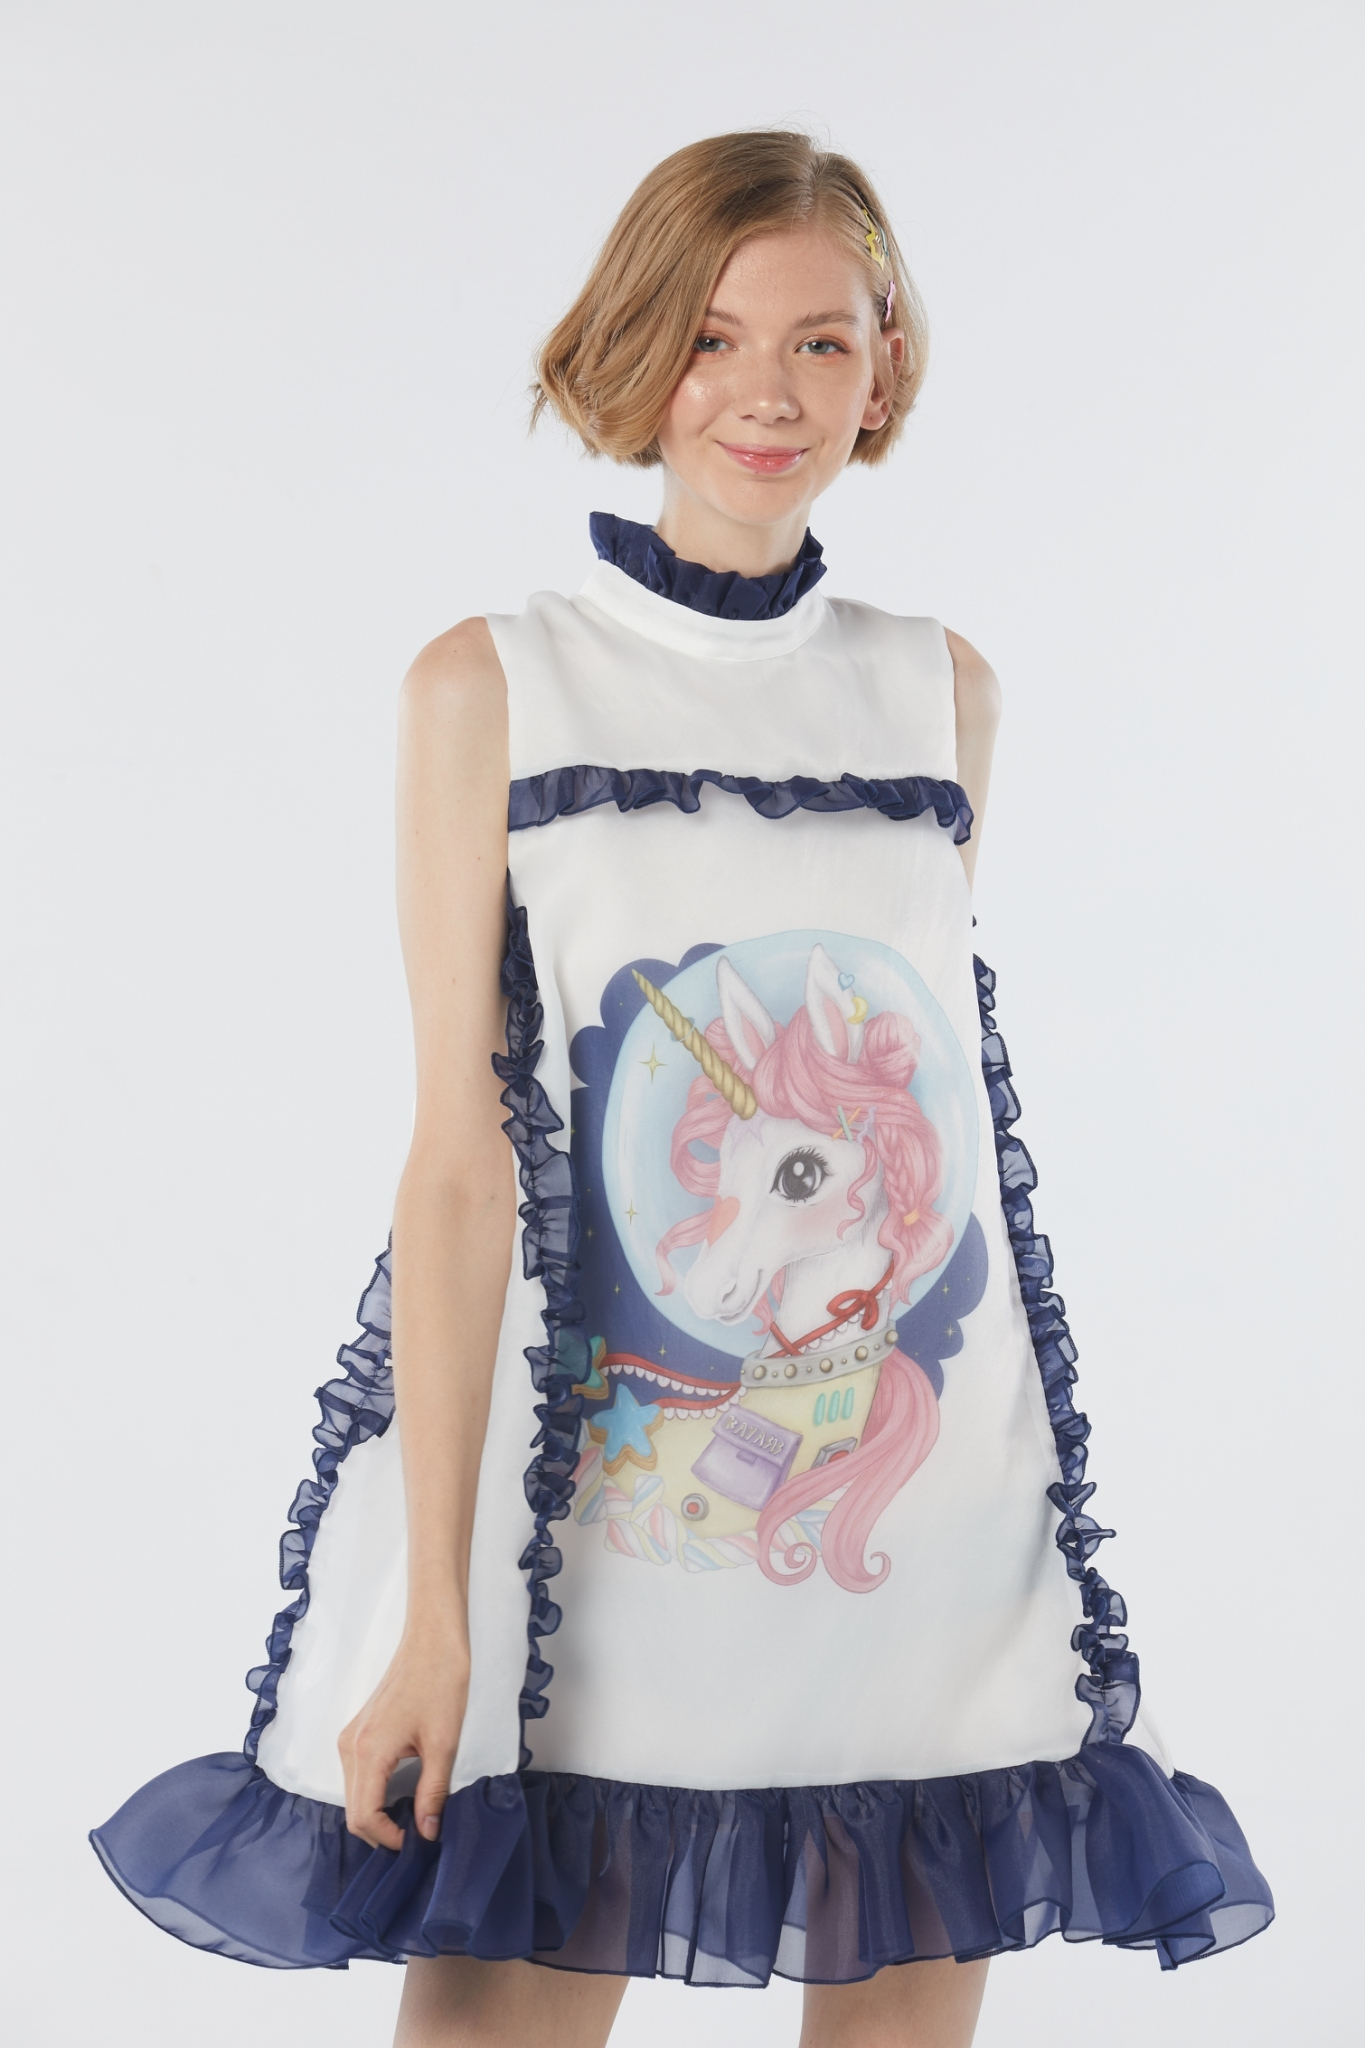 KYS020 Freakin Majesty Unicorn Print Sleeveless Dress - In Stock Now